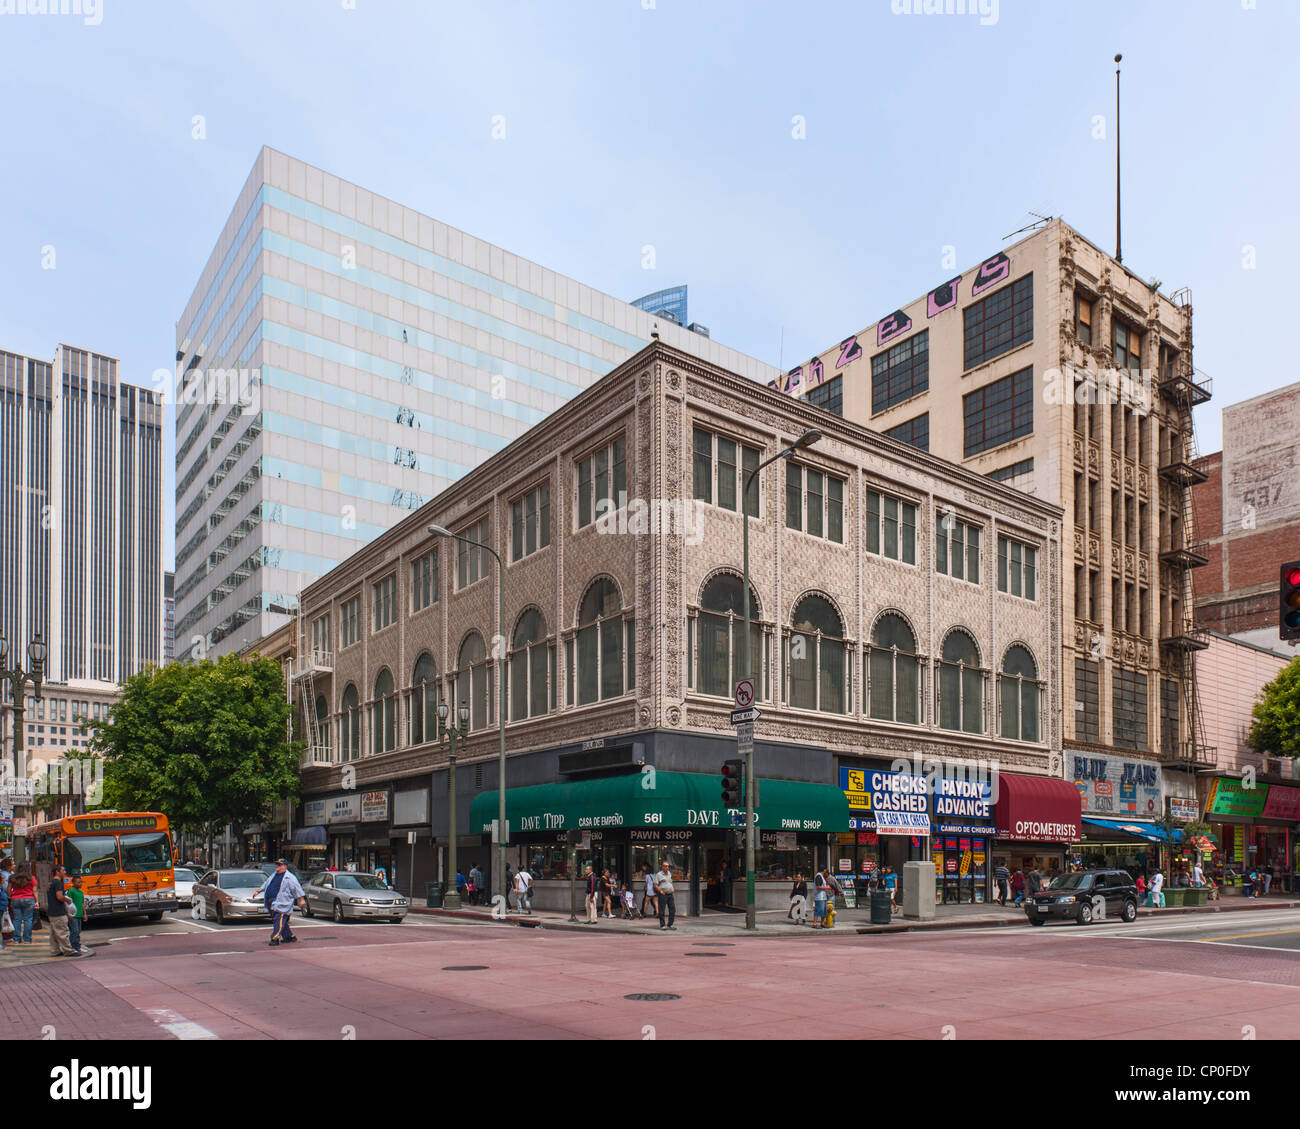 Sun Drug Co. Building, Los Angeles - Stock Image